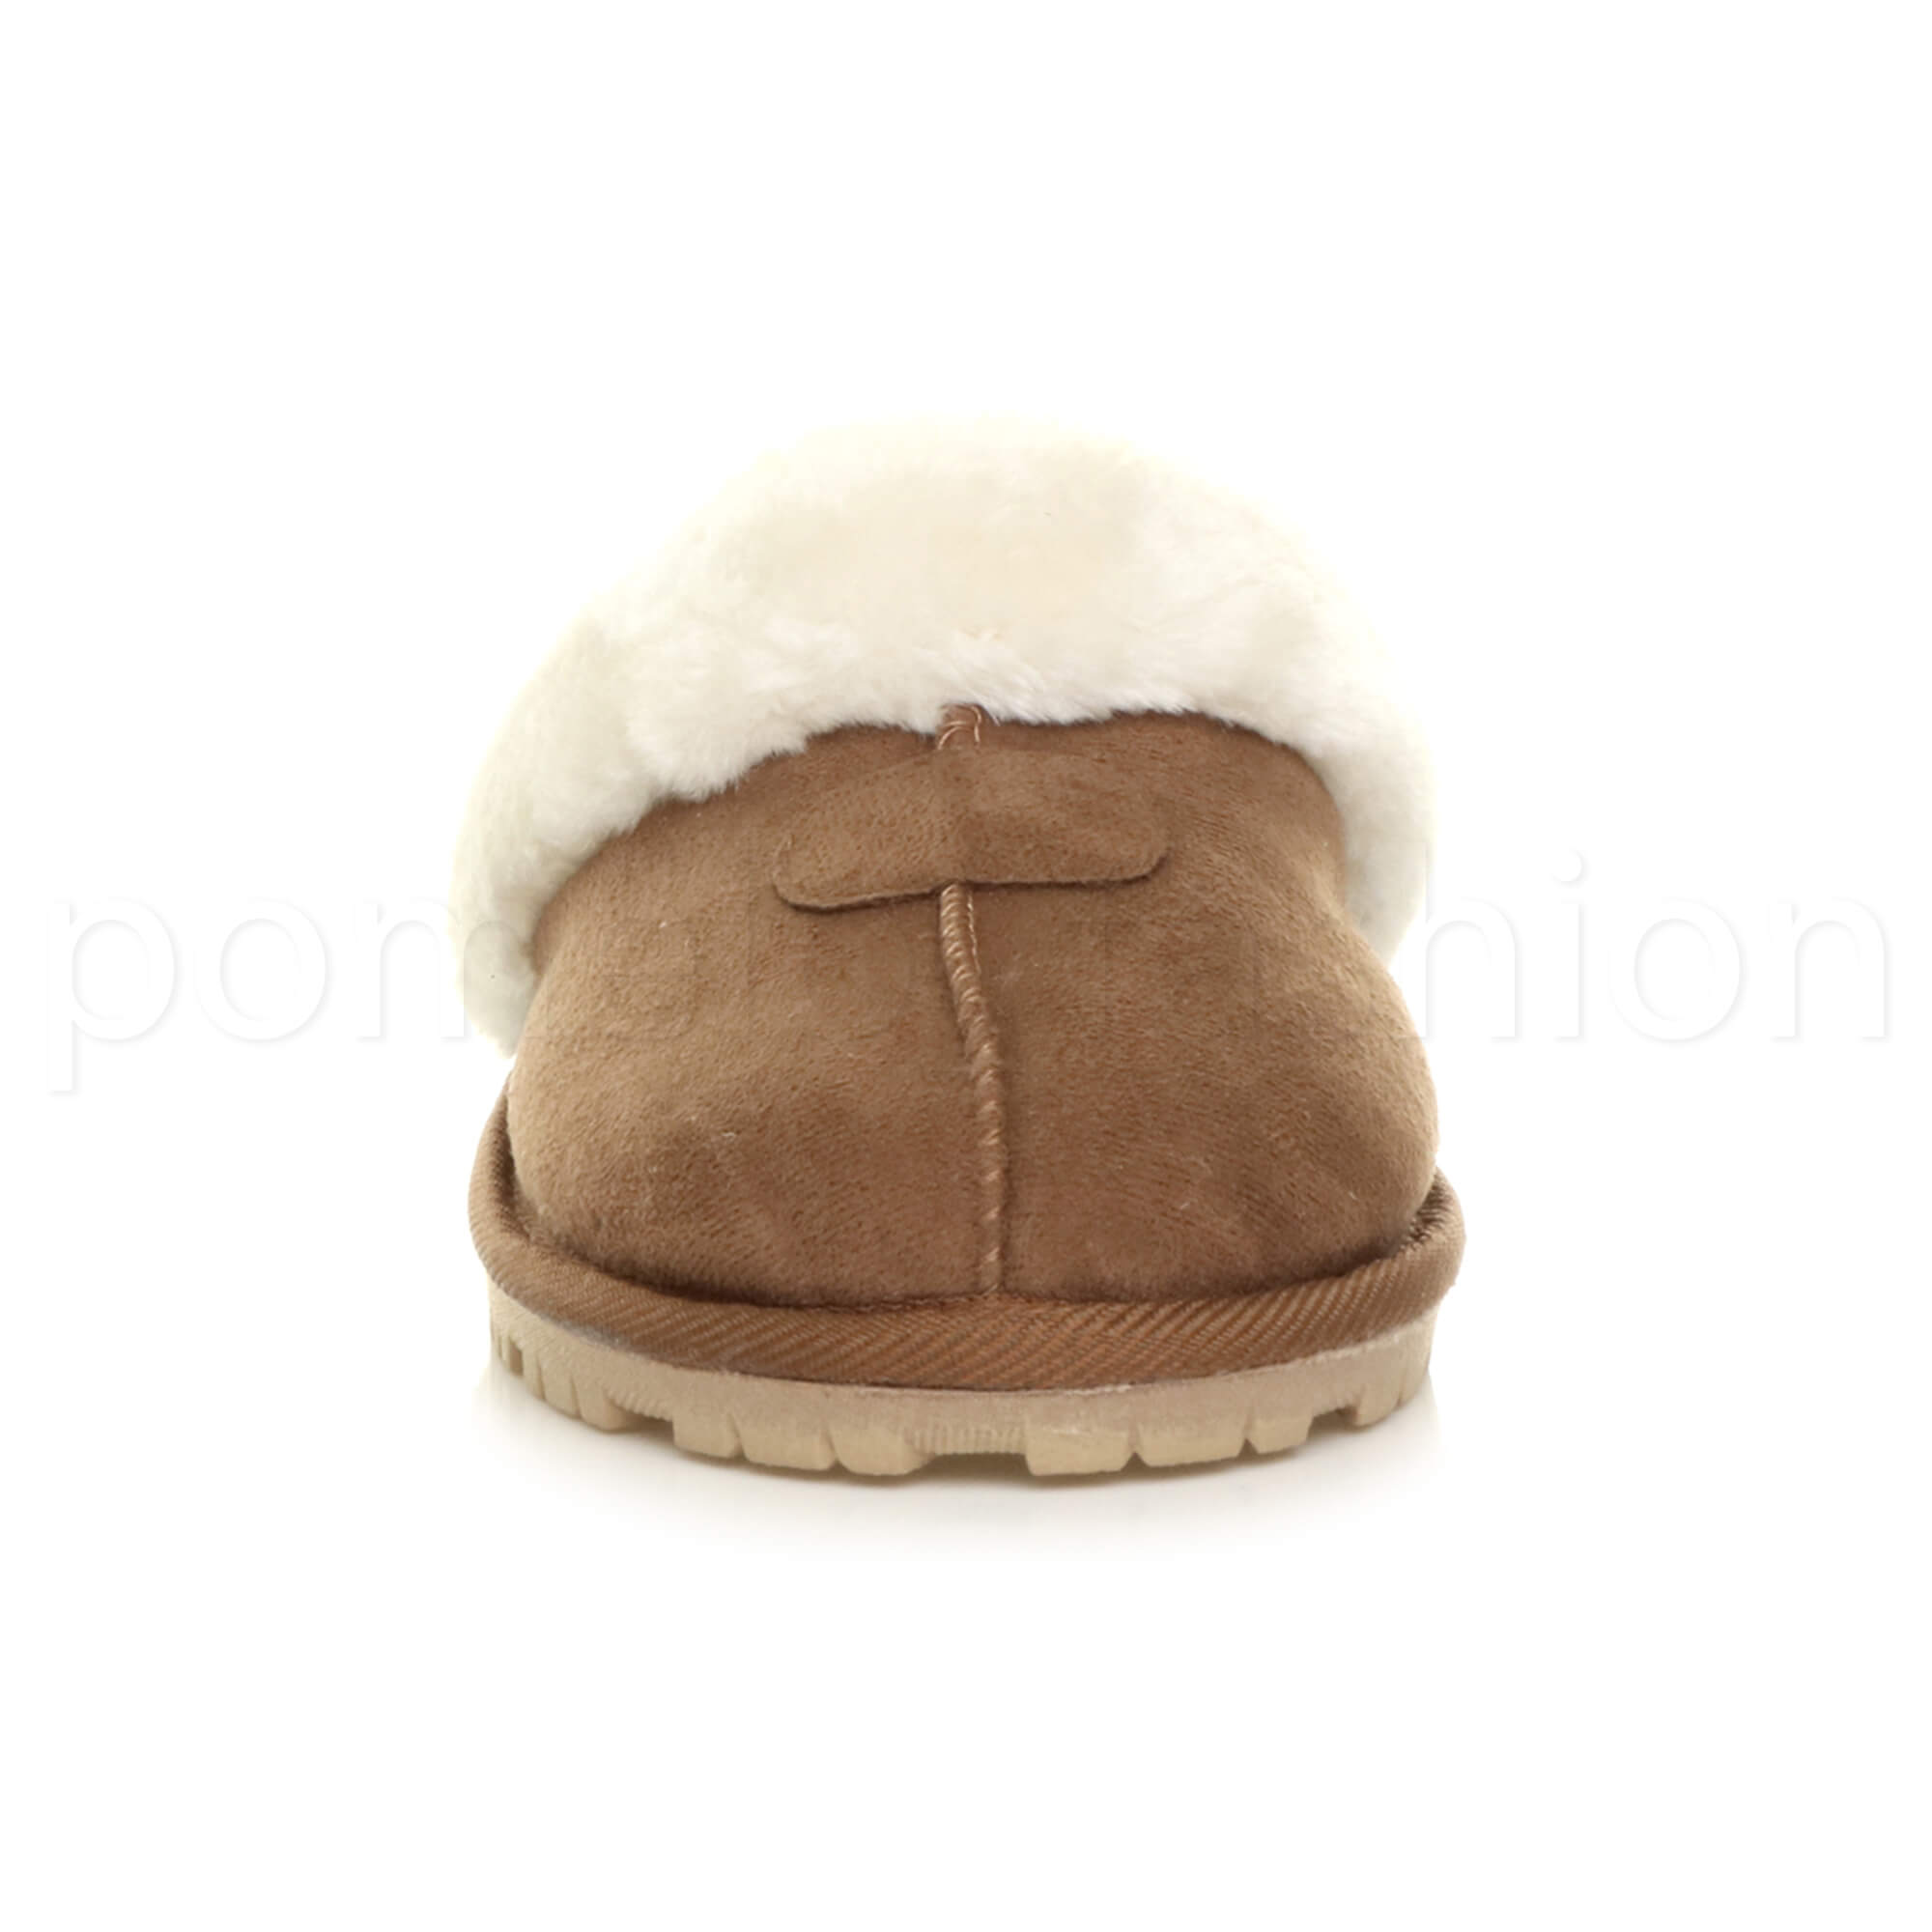 WOMENS-LADIES-FLAT-FUR-LINED-COMFORTABLE-WINTER-MULES-SLIPPERS-HOUSE-SHOES-SIZE thumbnail 49